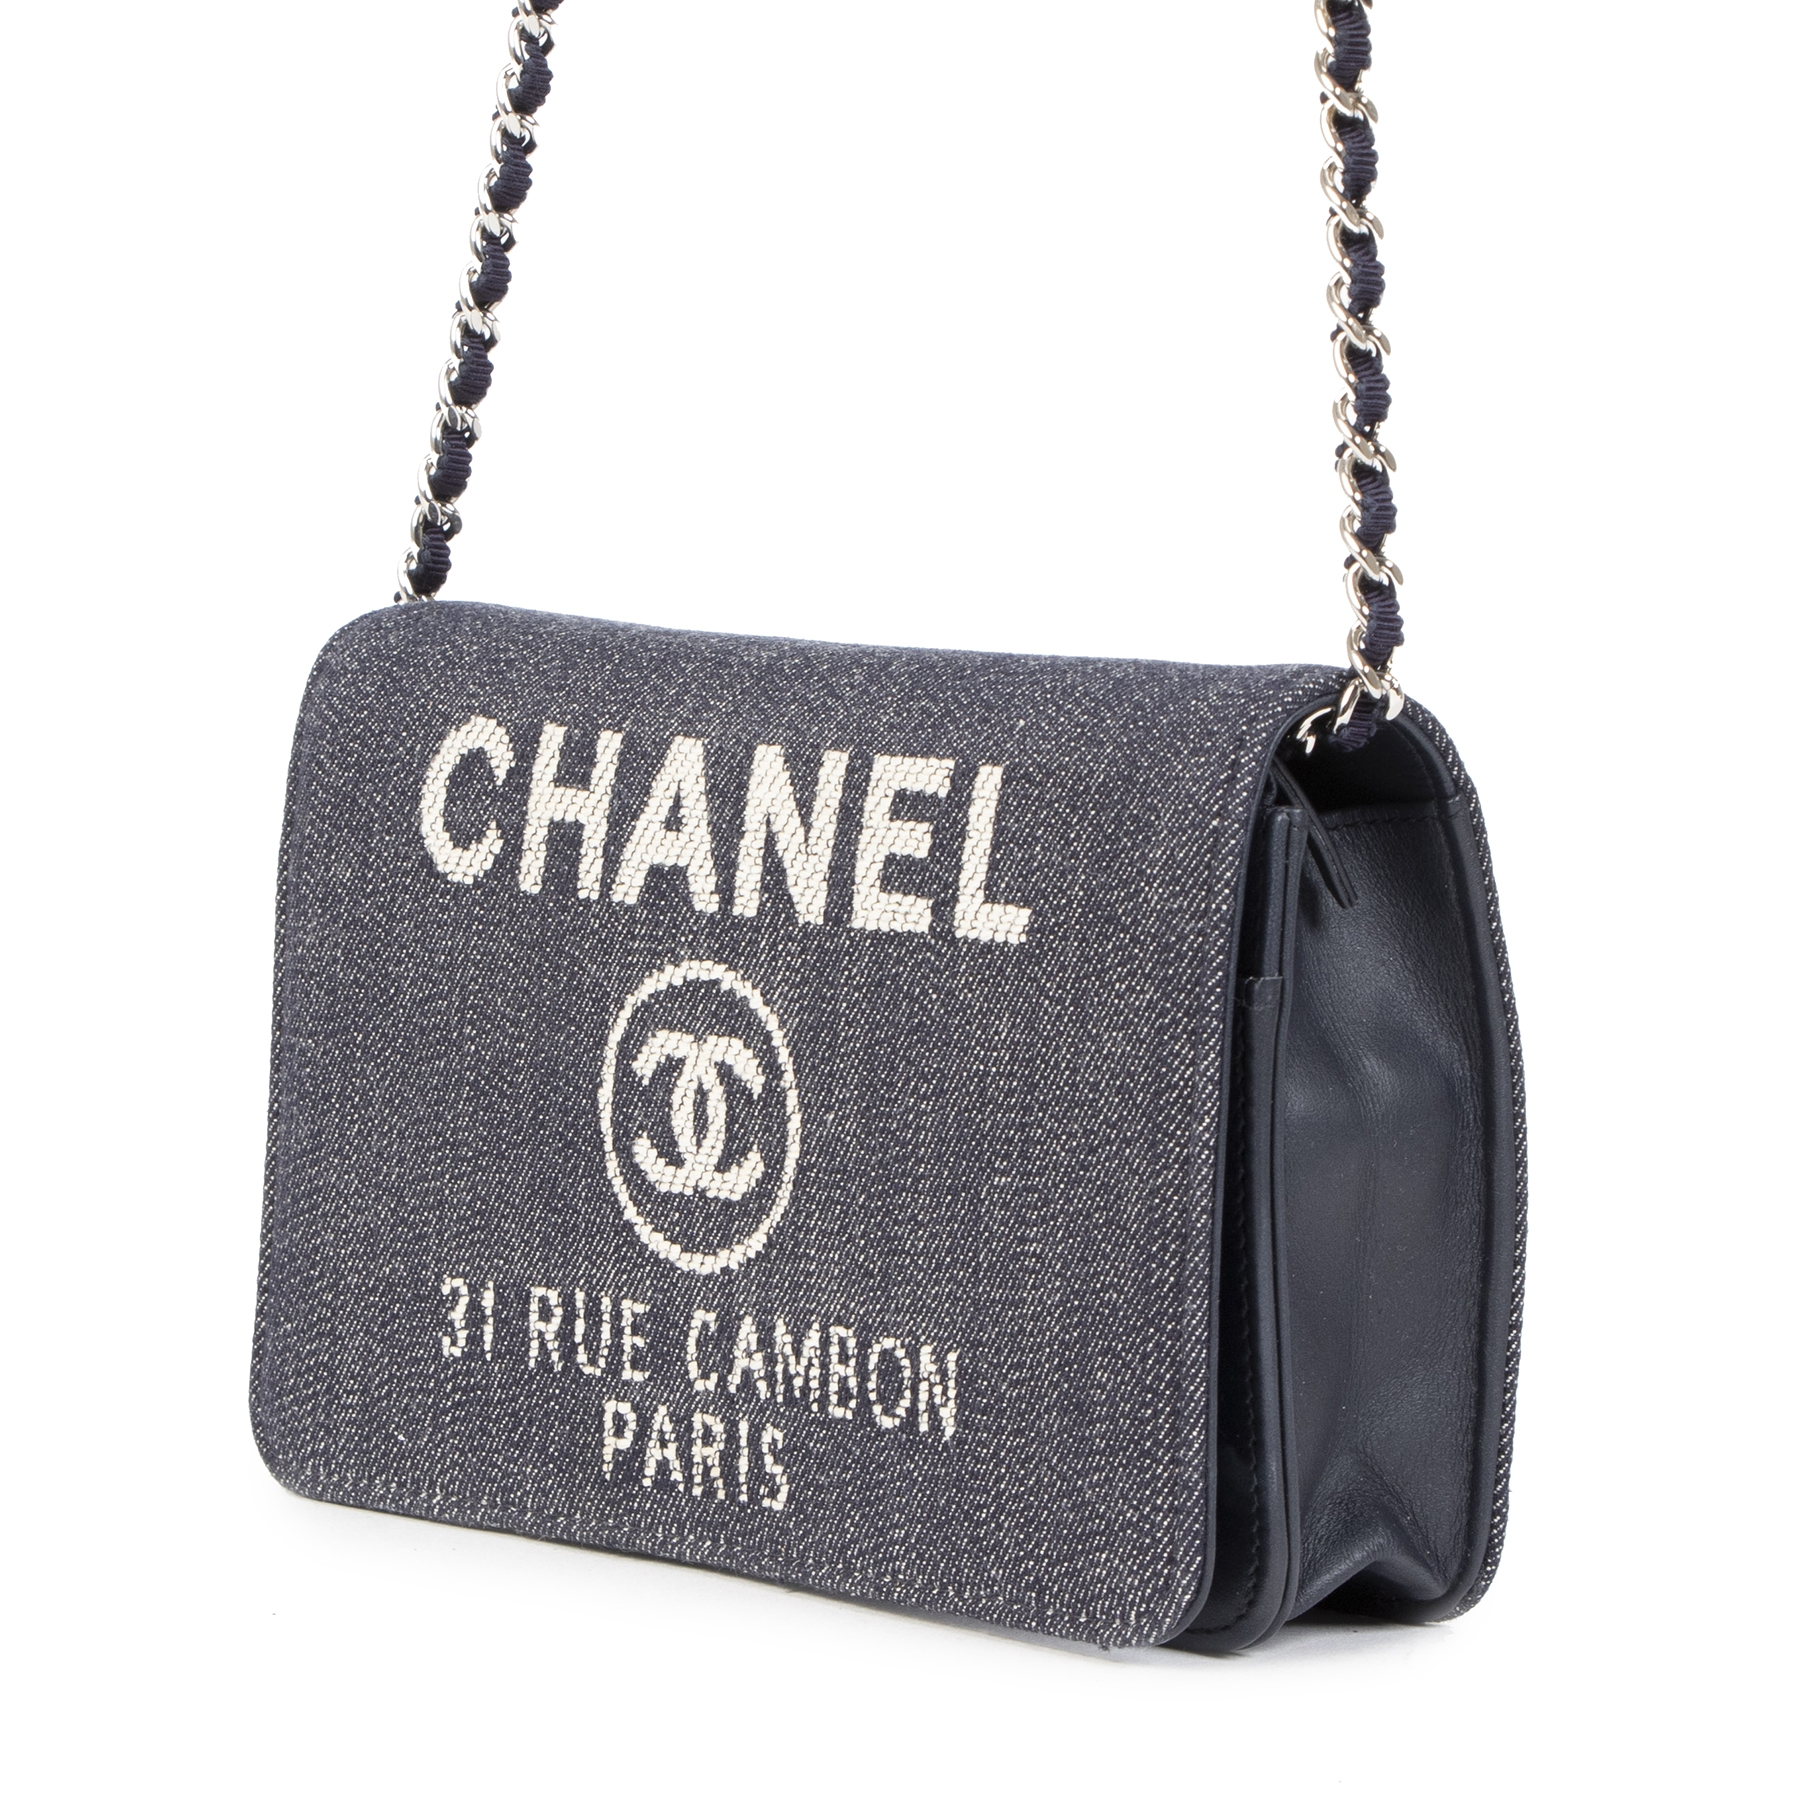 Authentic secondhand Chanel Denim 31 Rue Cambon Wallet On A Chain designer bags designer brands fashion luxury vintage webshop safe secure online shopping worldwide shipping